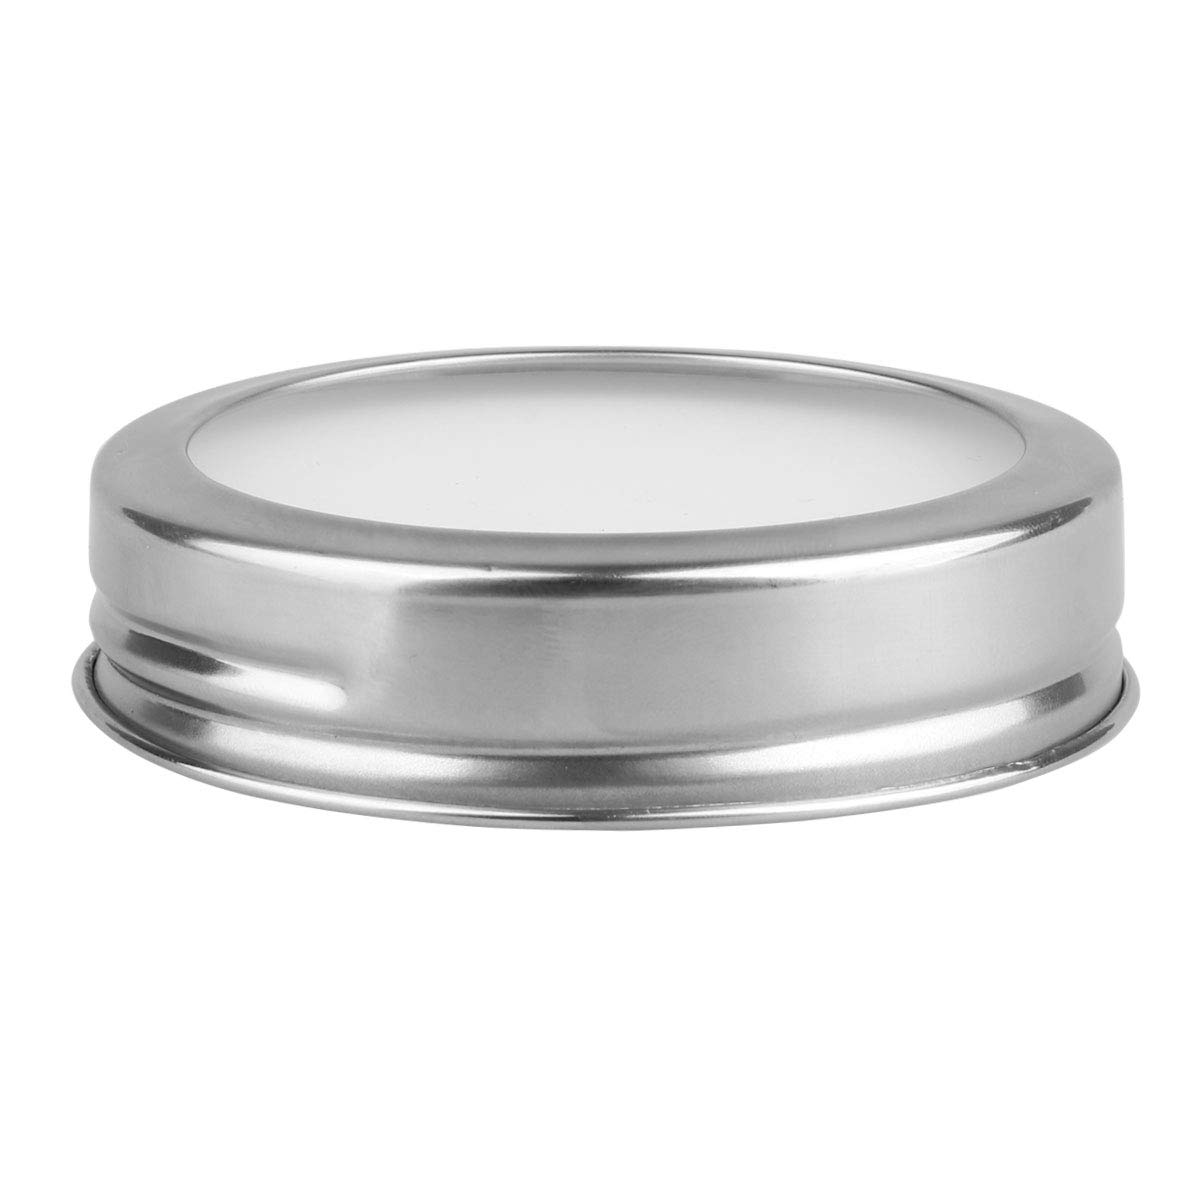 IEFIEL Rust Resistant Mason Jar Canning Lids Storage Caps with Silicone Sealing Inserts Silver 70mm